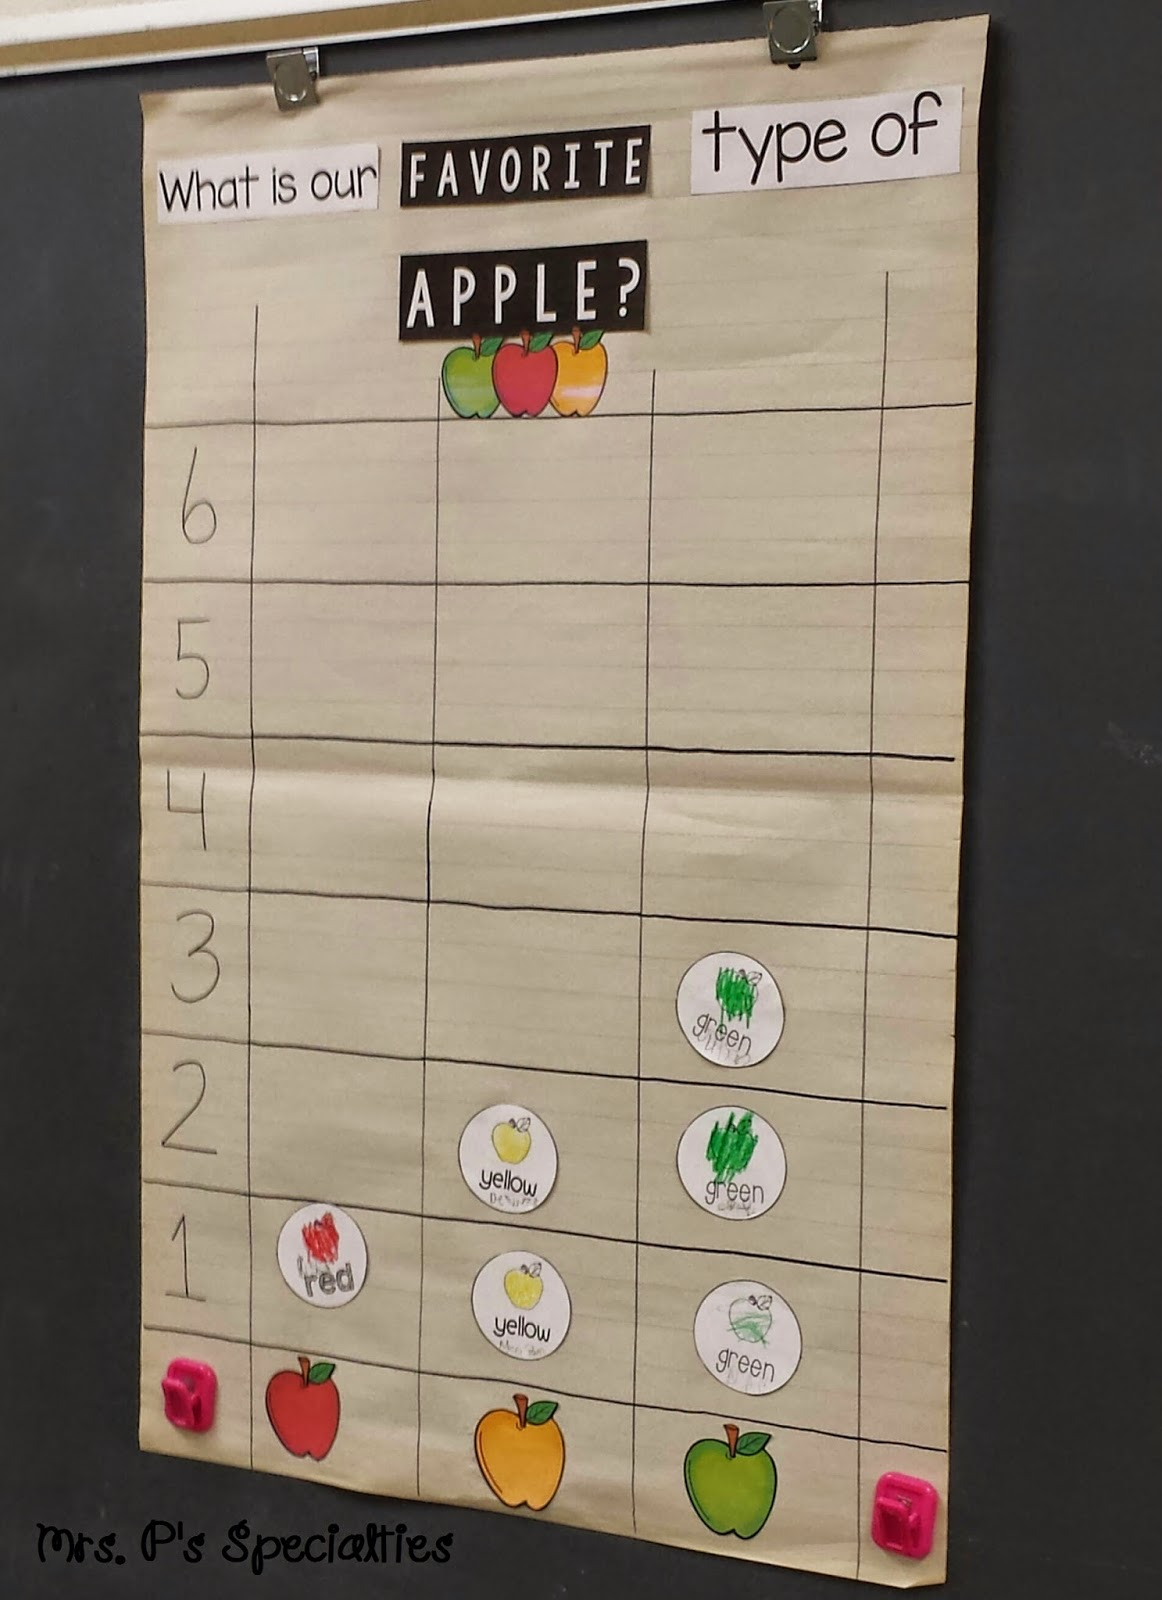 photo of graph class made about their favorite type of apple